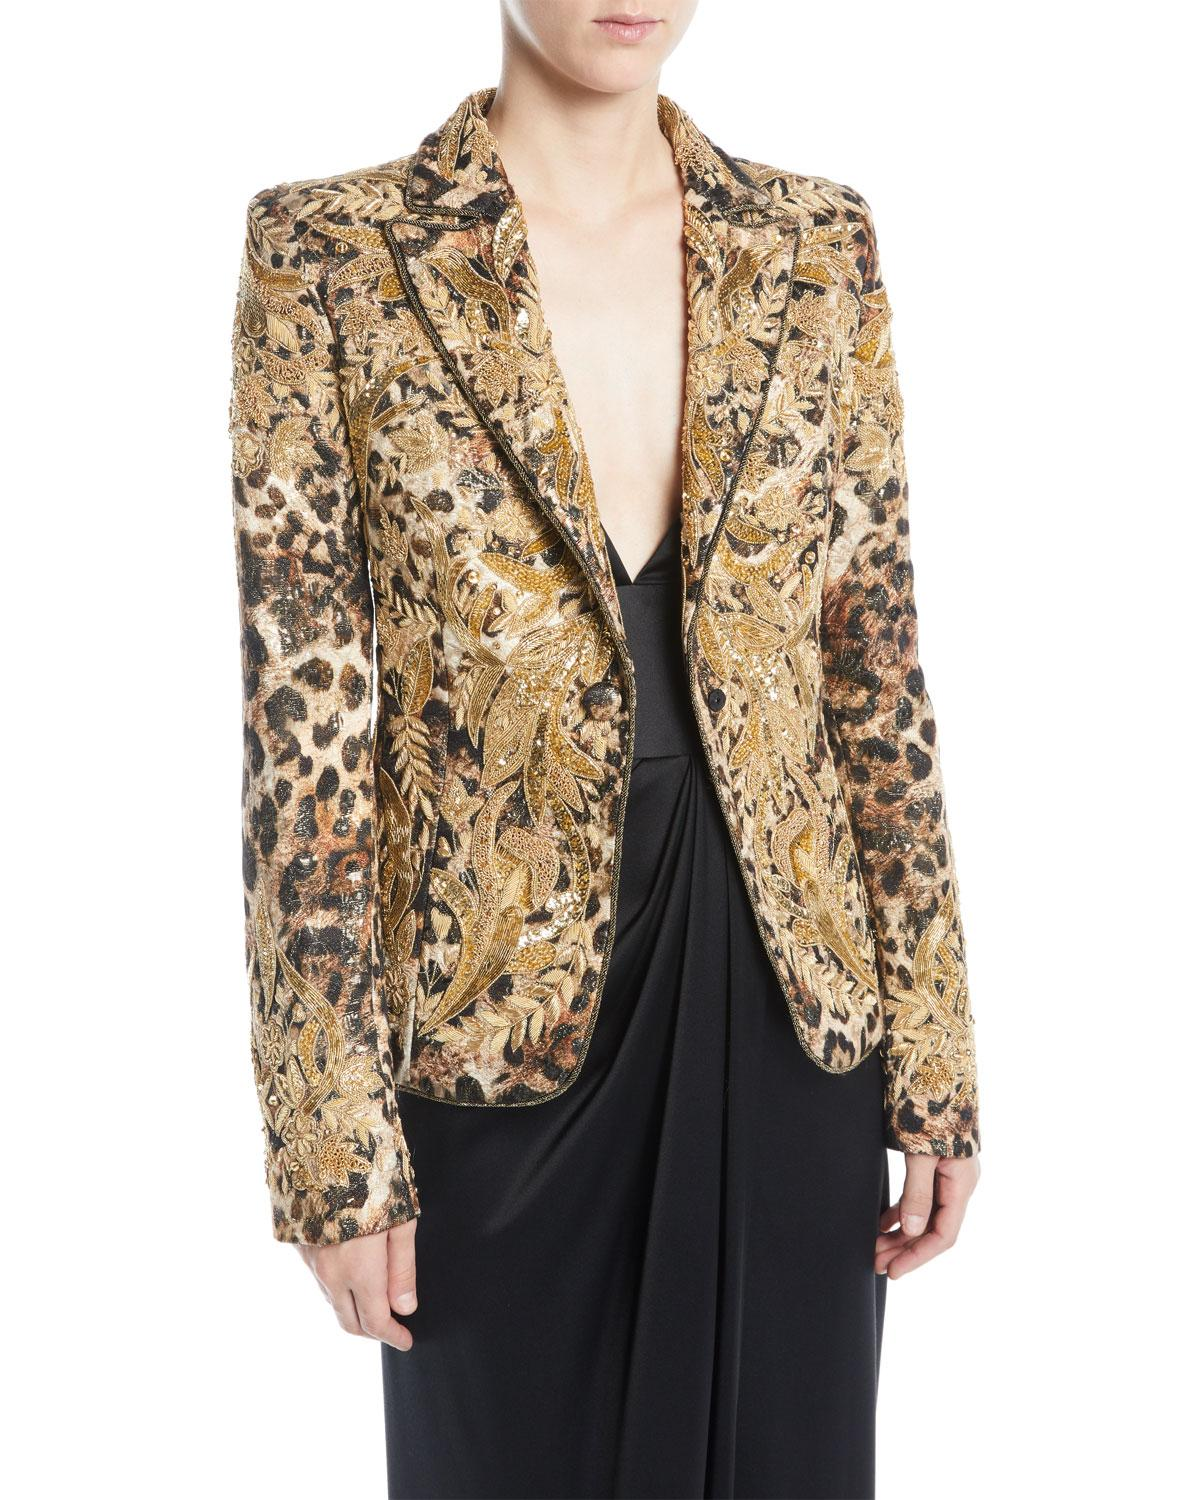 Naeem Khan Animal-Print Beaded Jacquard Jacket In Animal Print